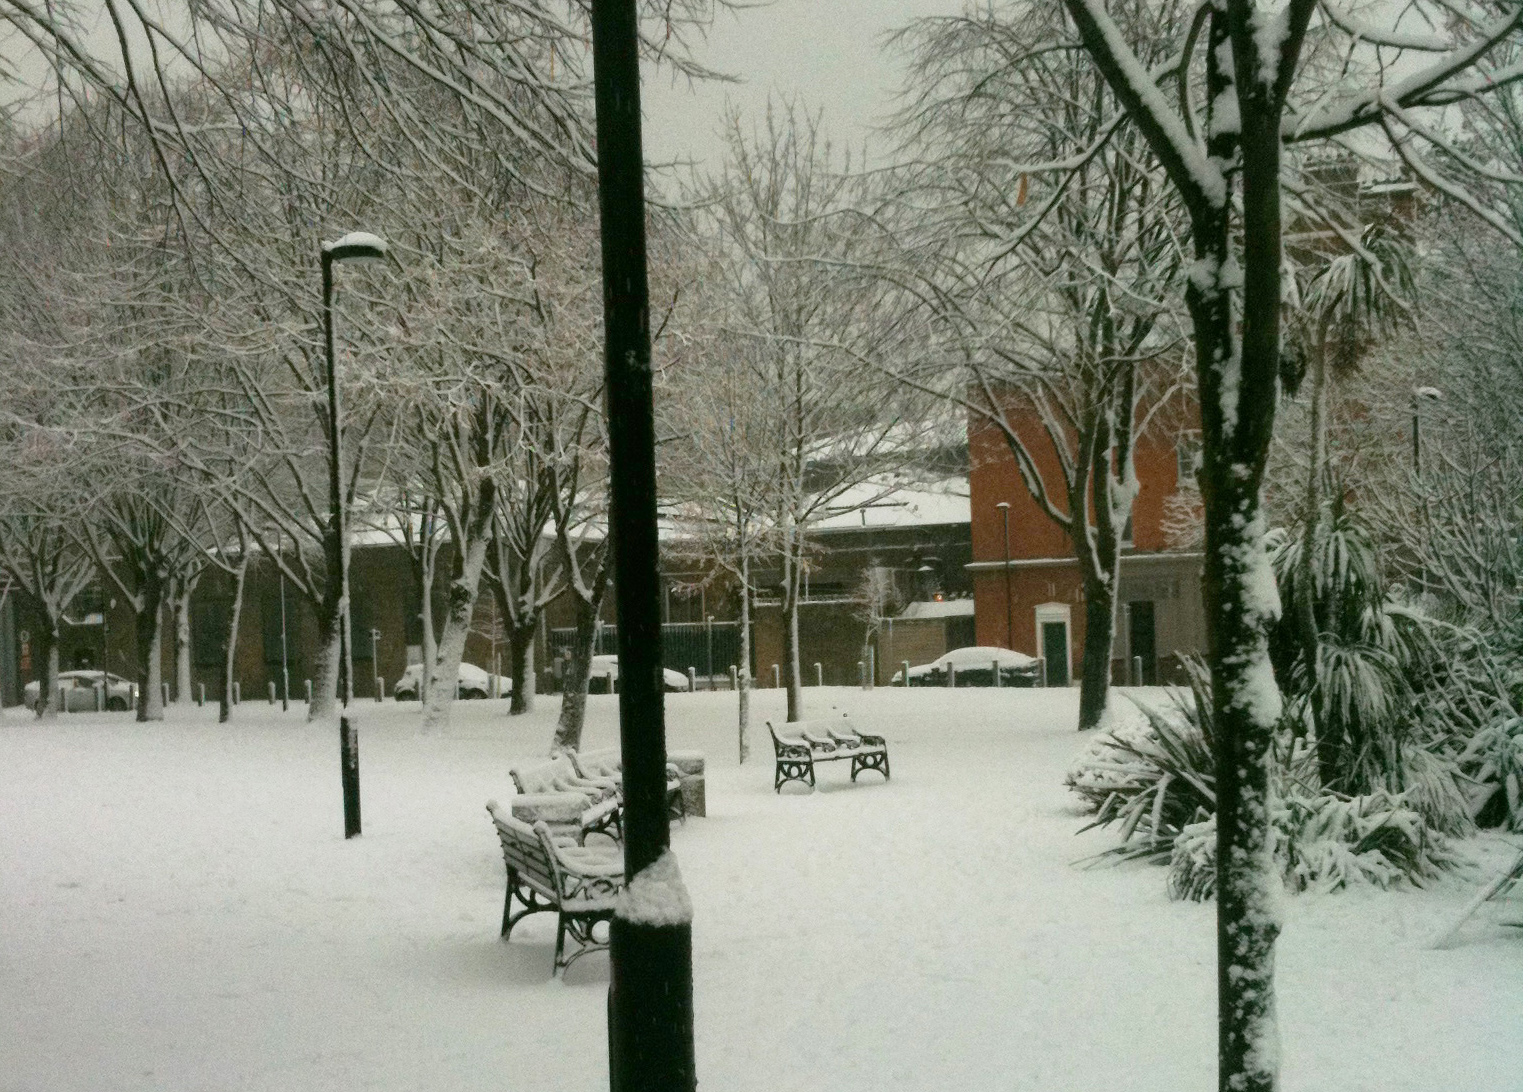 The Benches in front of the Tea House Theatre on a snowy day